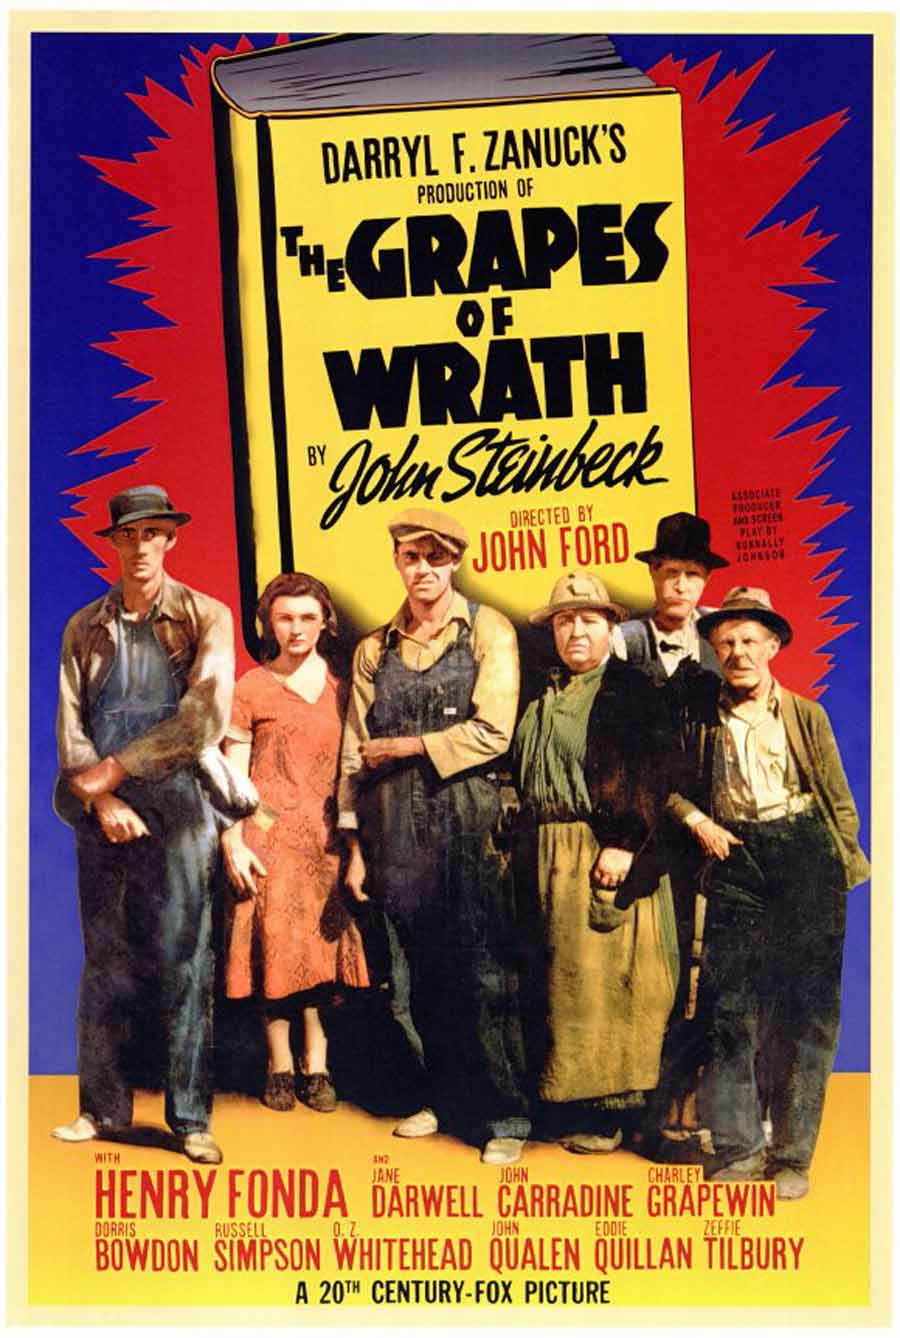 grapes of wrath oz whitehead baha'i